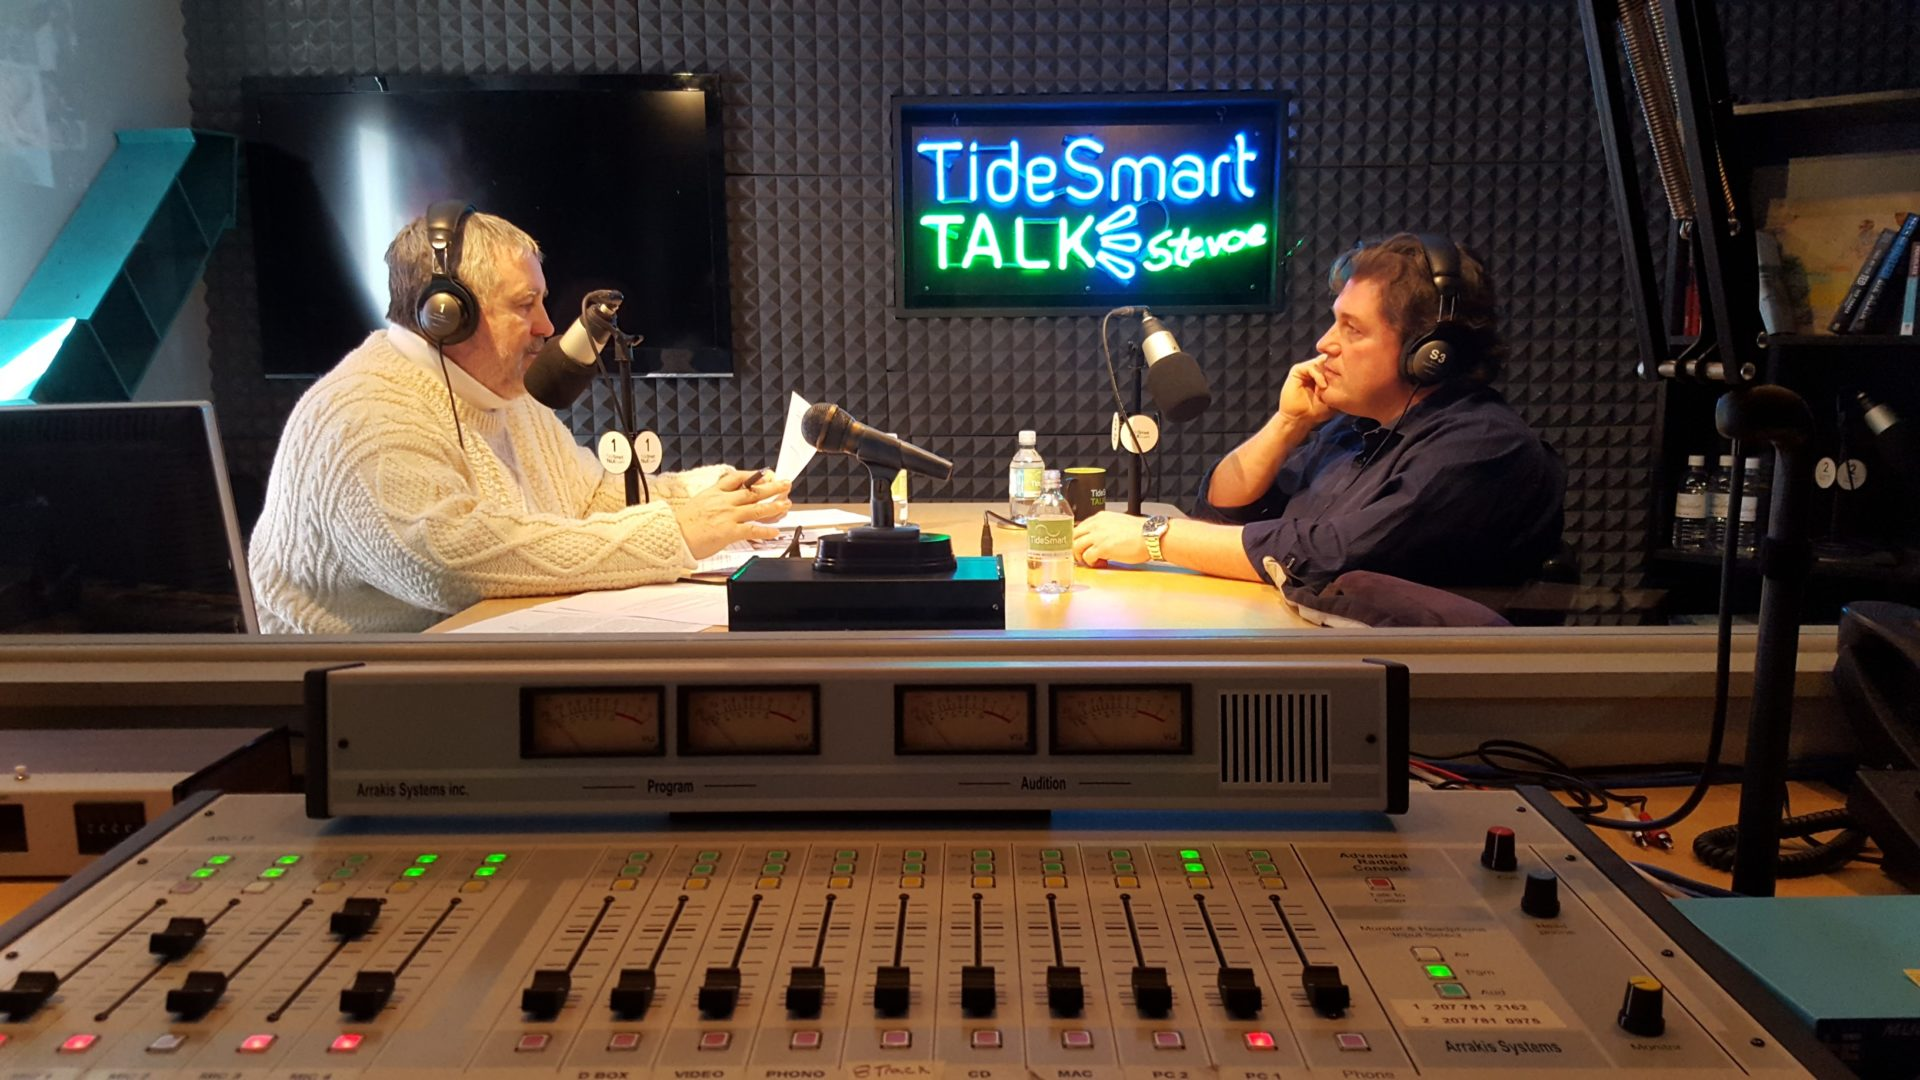 Host of TideSmart Talk with Stevoe, Steve Woods, welcomed Medical Researcher at Maine Medical Center's Research Institute, Dr. Leif Oxburgh (at right).